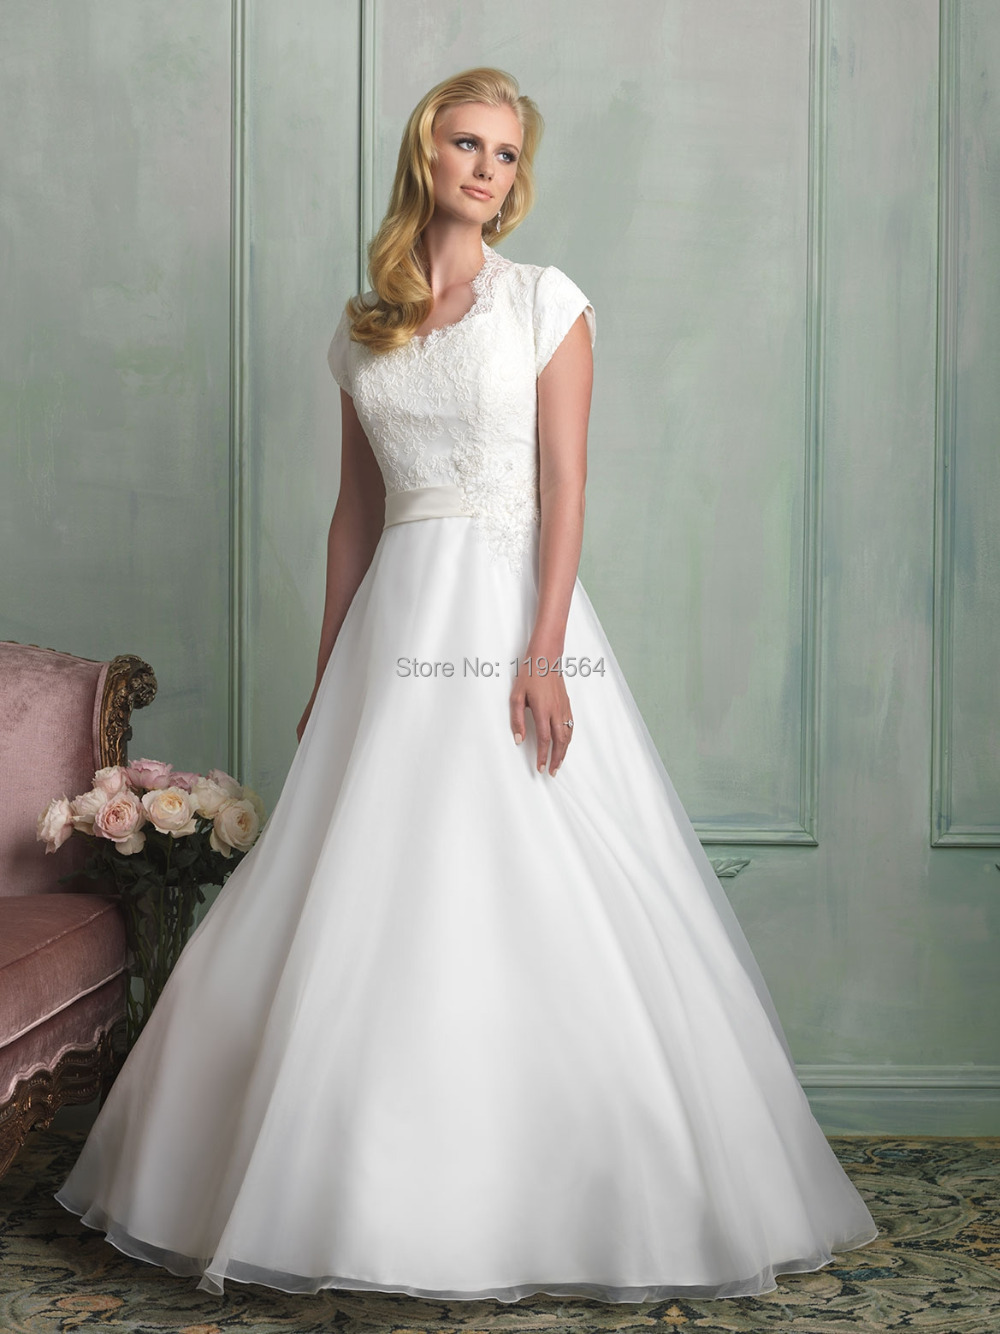 Modest High Back Wedding Dresses 2015 White Organza A Line Bridal Gowns Short Sleeve Vestidos De Noivas Top Lace Wh639: High Back Wedding Dress At Reisefeber.org